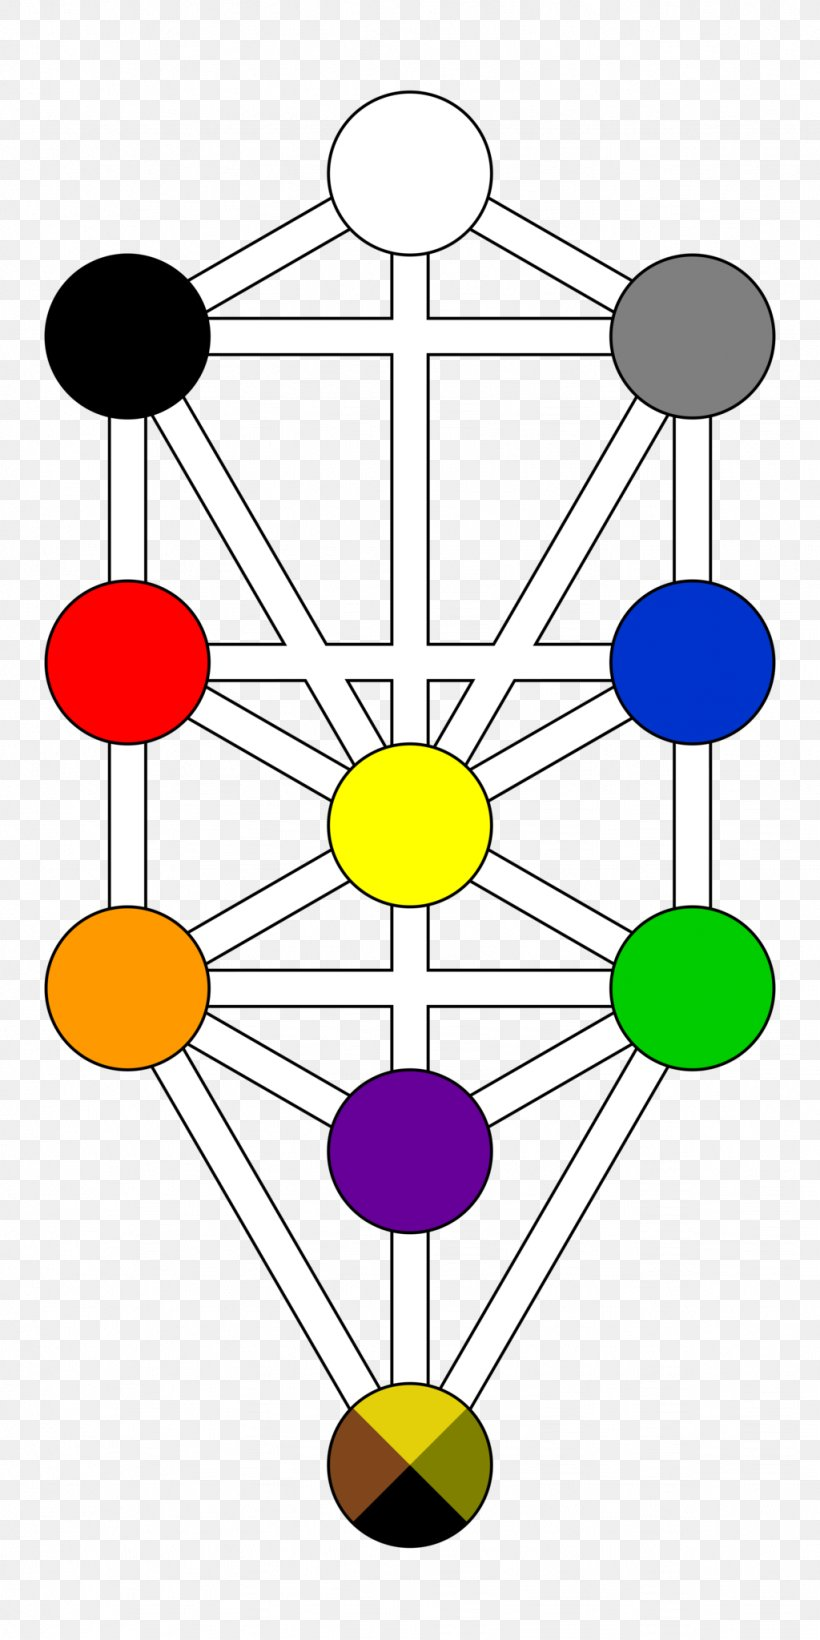 Tree Of Life Kabbalah Hermetic Qabalah Sefirot Png 1024x2048px Tree Of Life Area Color Dion Fortune For example, we learn that the endless light is brought into the physical world through the process of transformation of. tree of life kabbalah hermetic qabalah